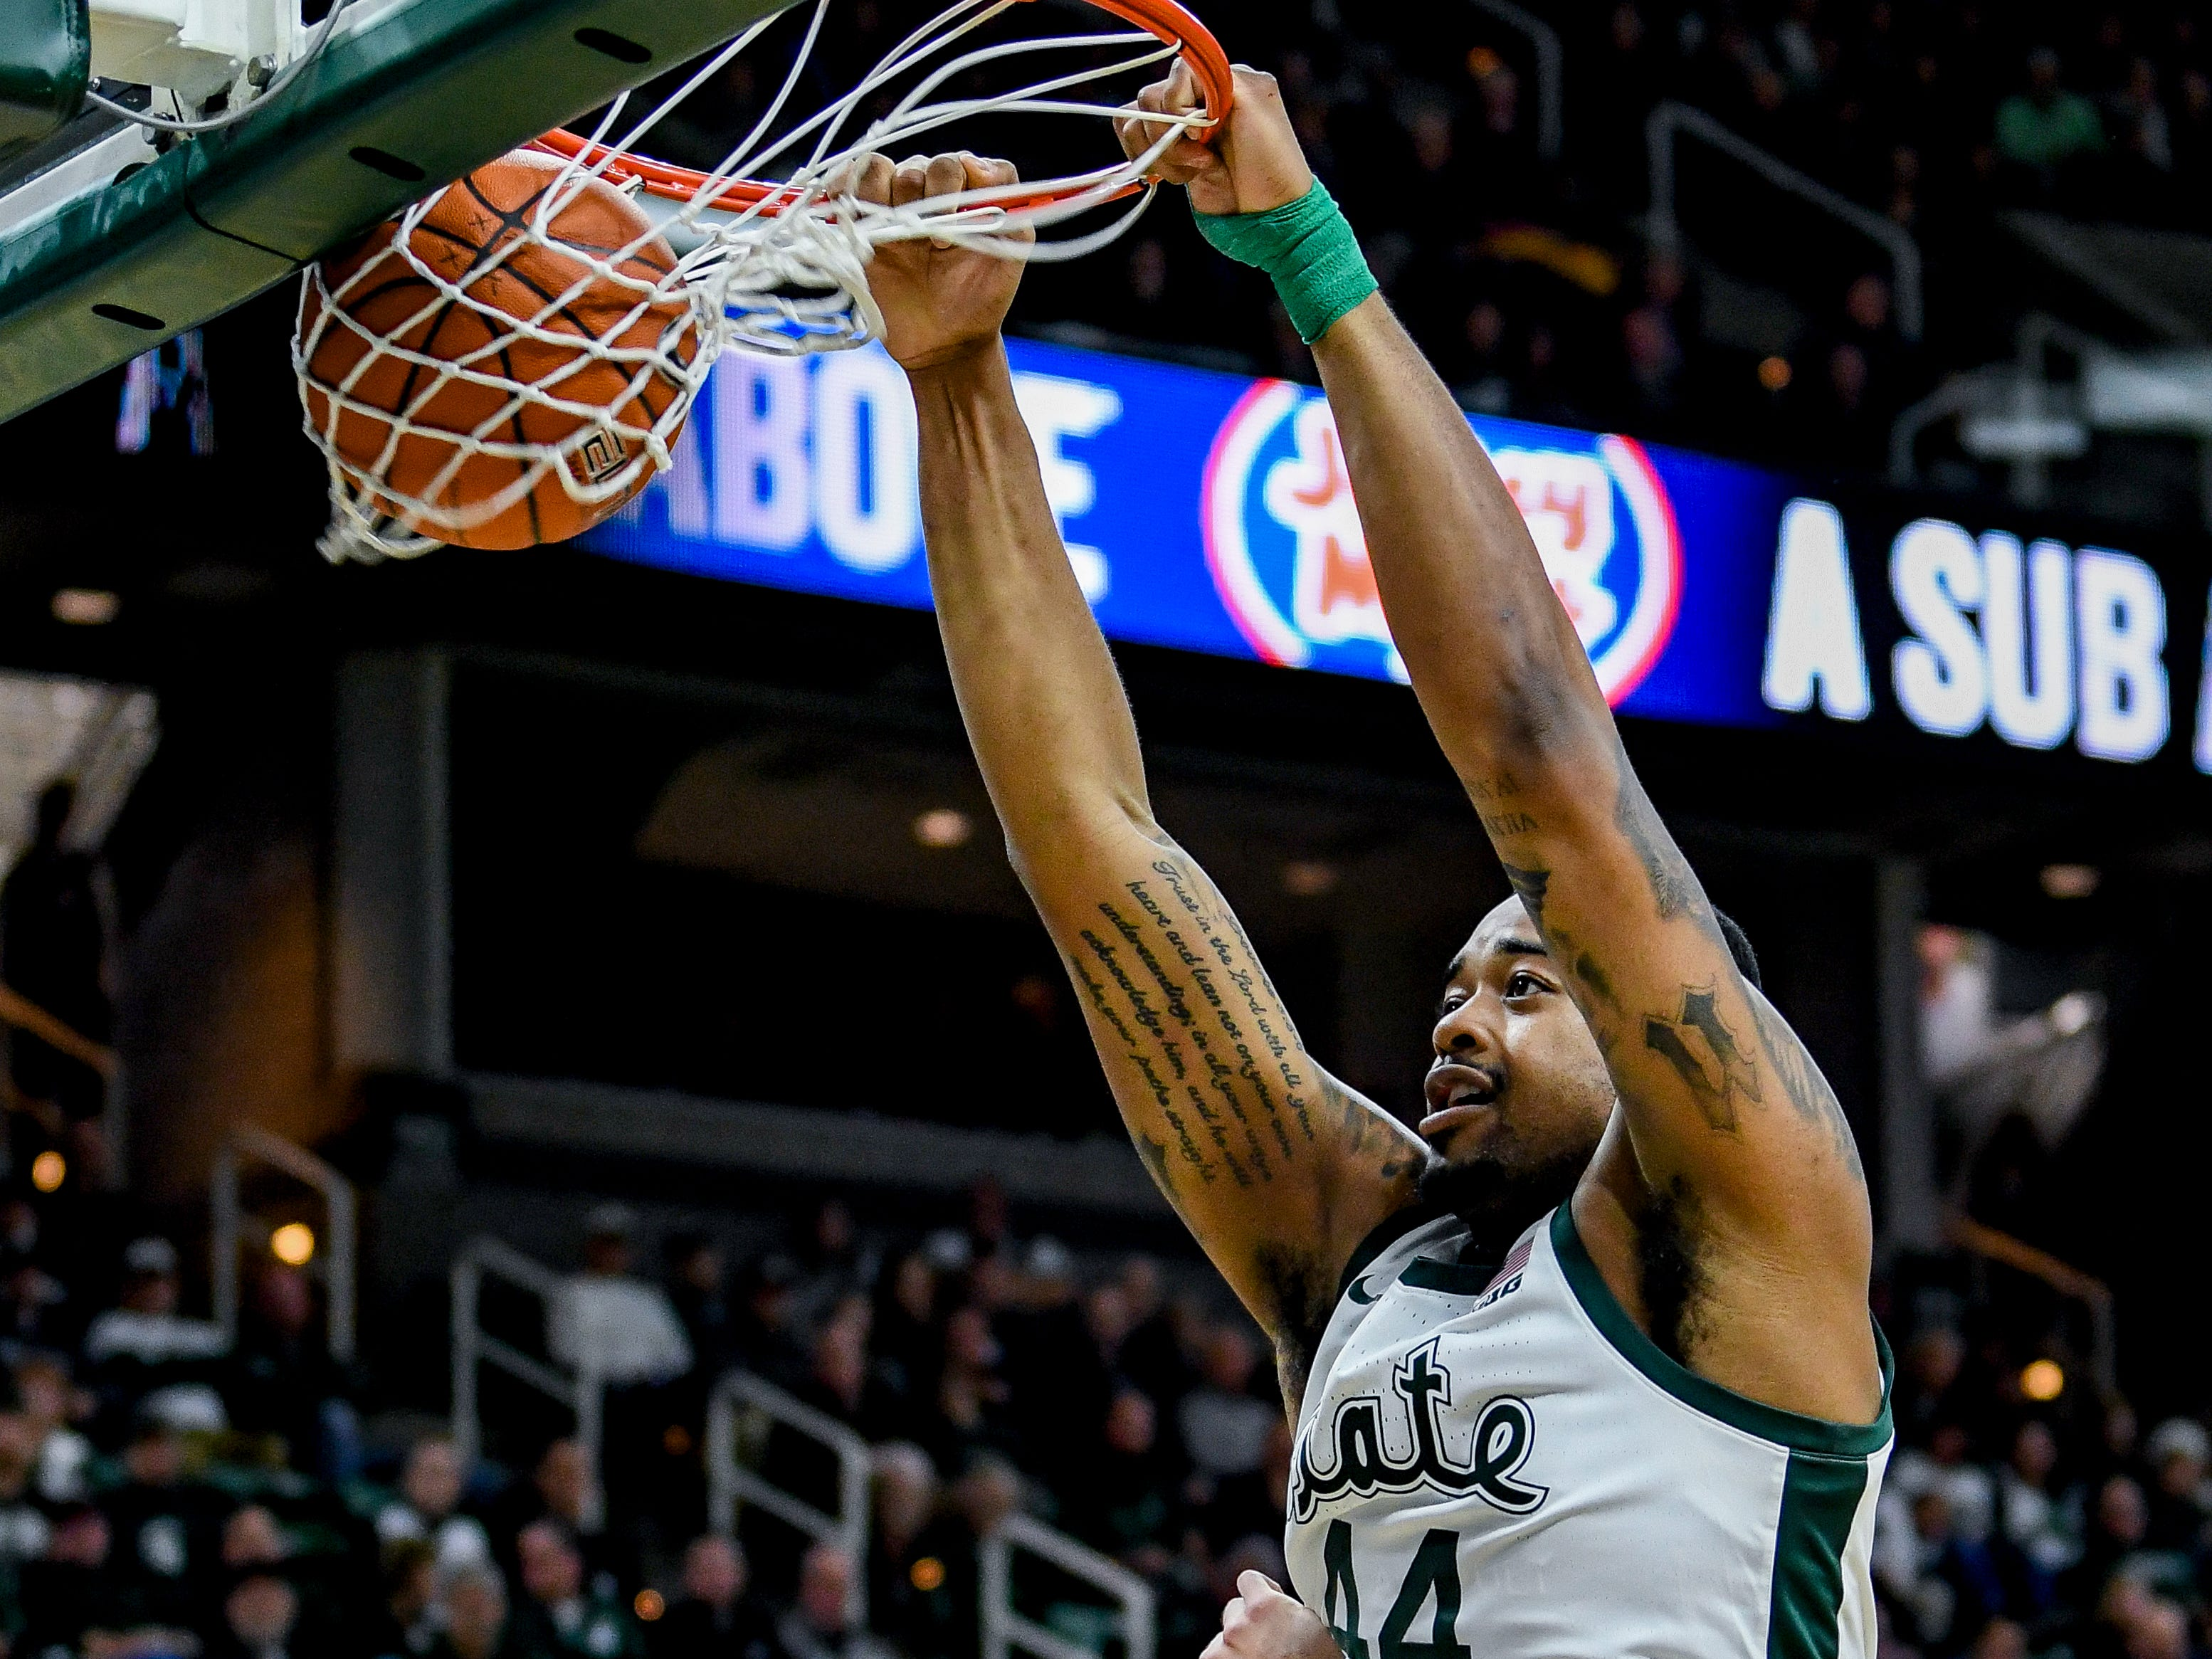 Michigan State's Nick Ward, right, dunks over Iowa's Luka Garza during the second half on Monday, Dec. 3, 2018, at the Breslin Center in East Lansing. Michigan State beat Iowa 90-68.